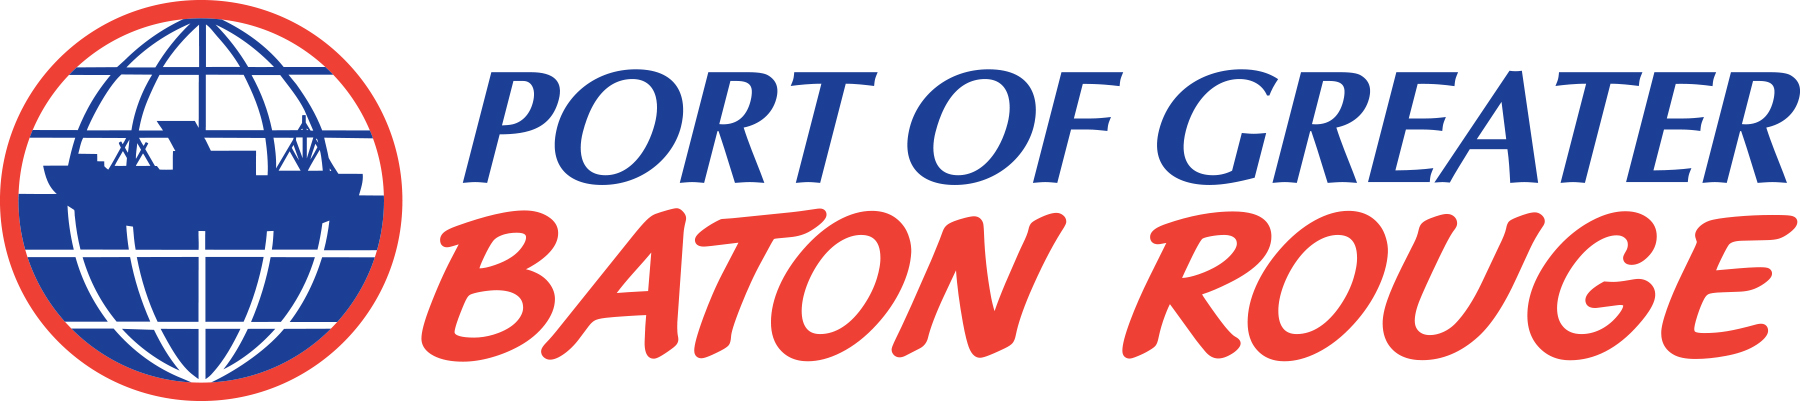 Companies — The Port of Greater Baton Rouge